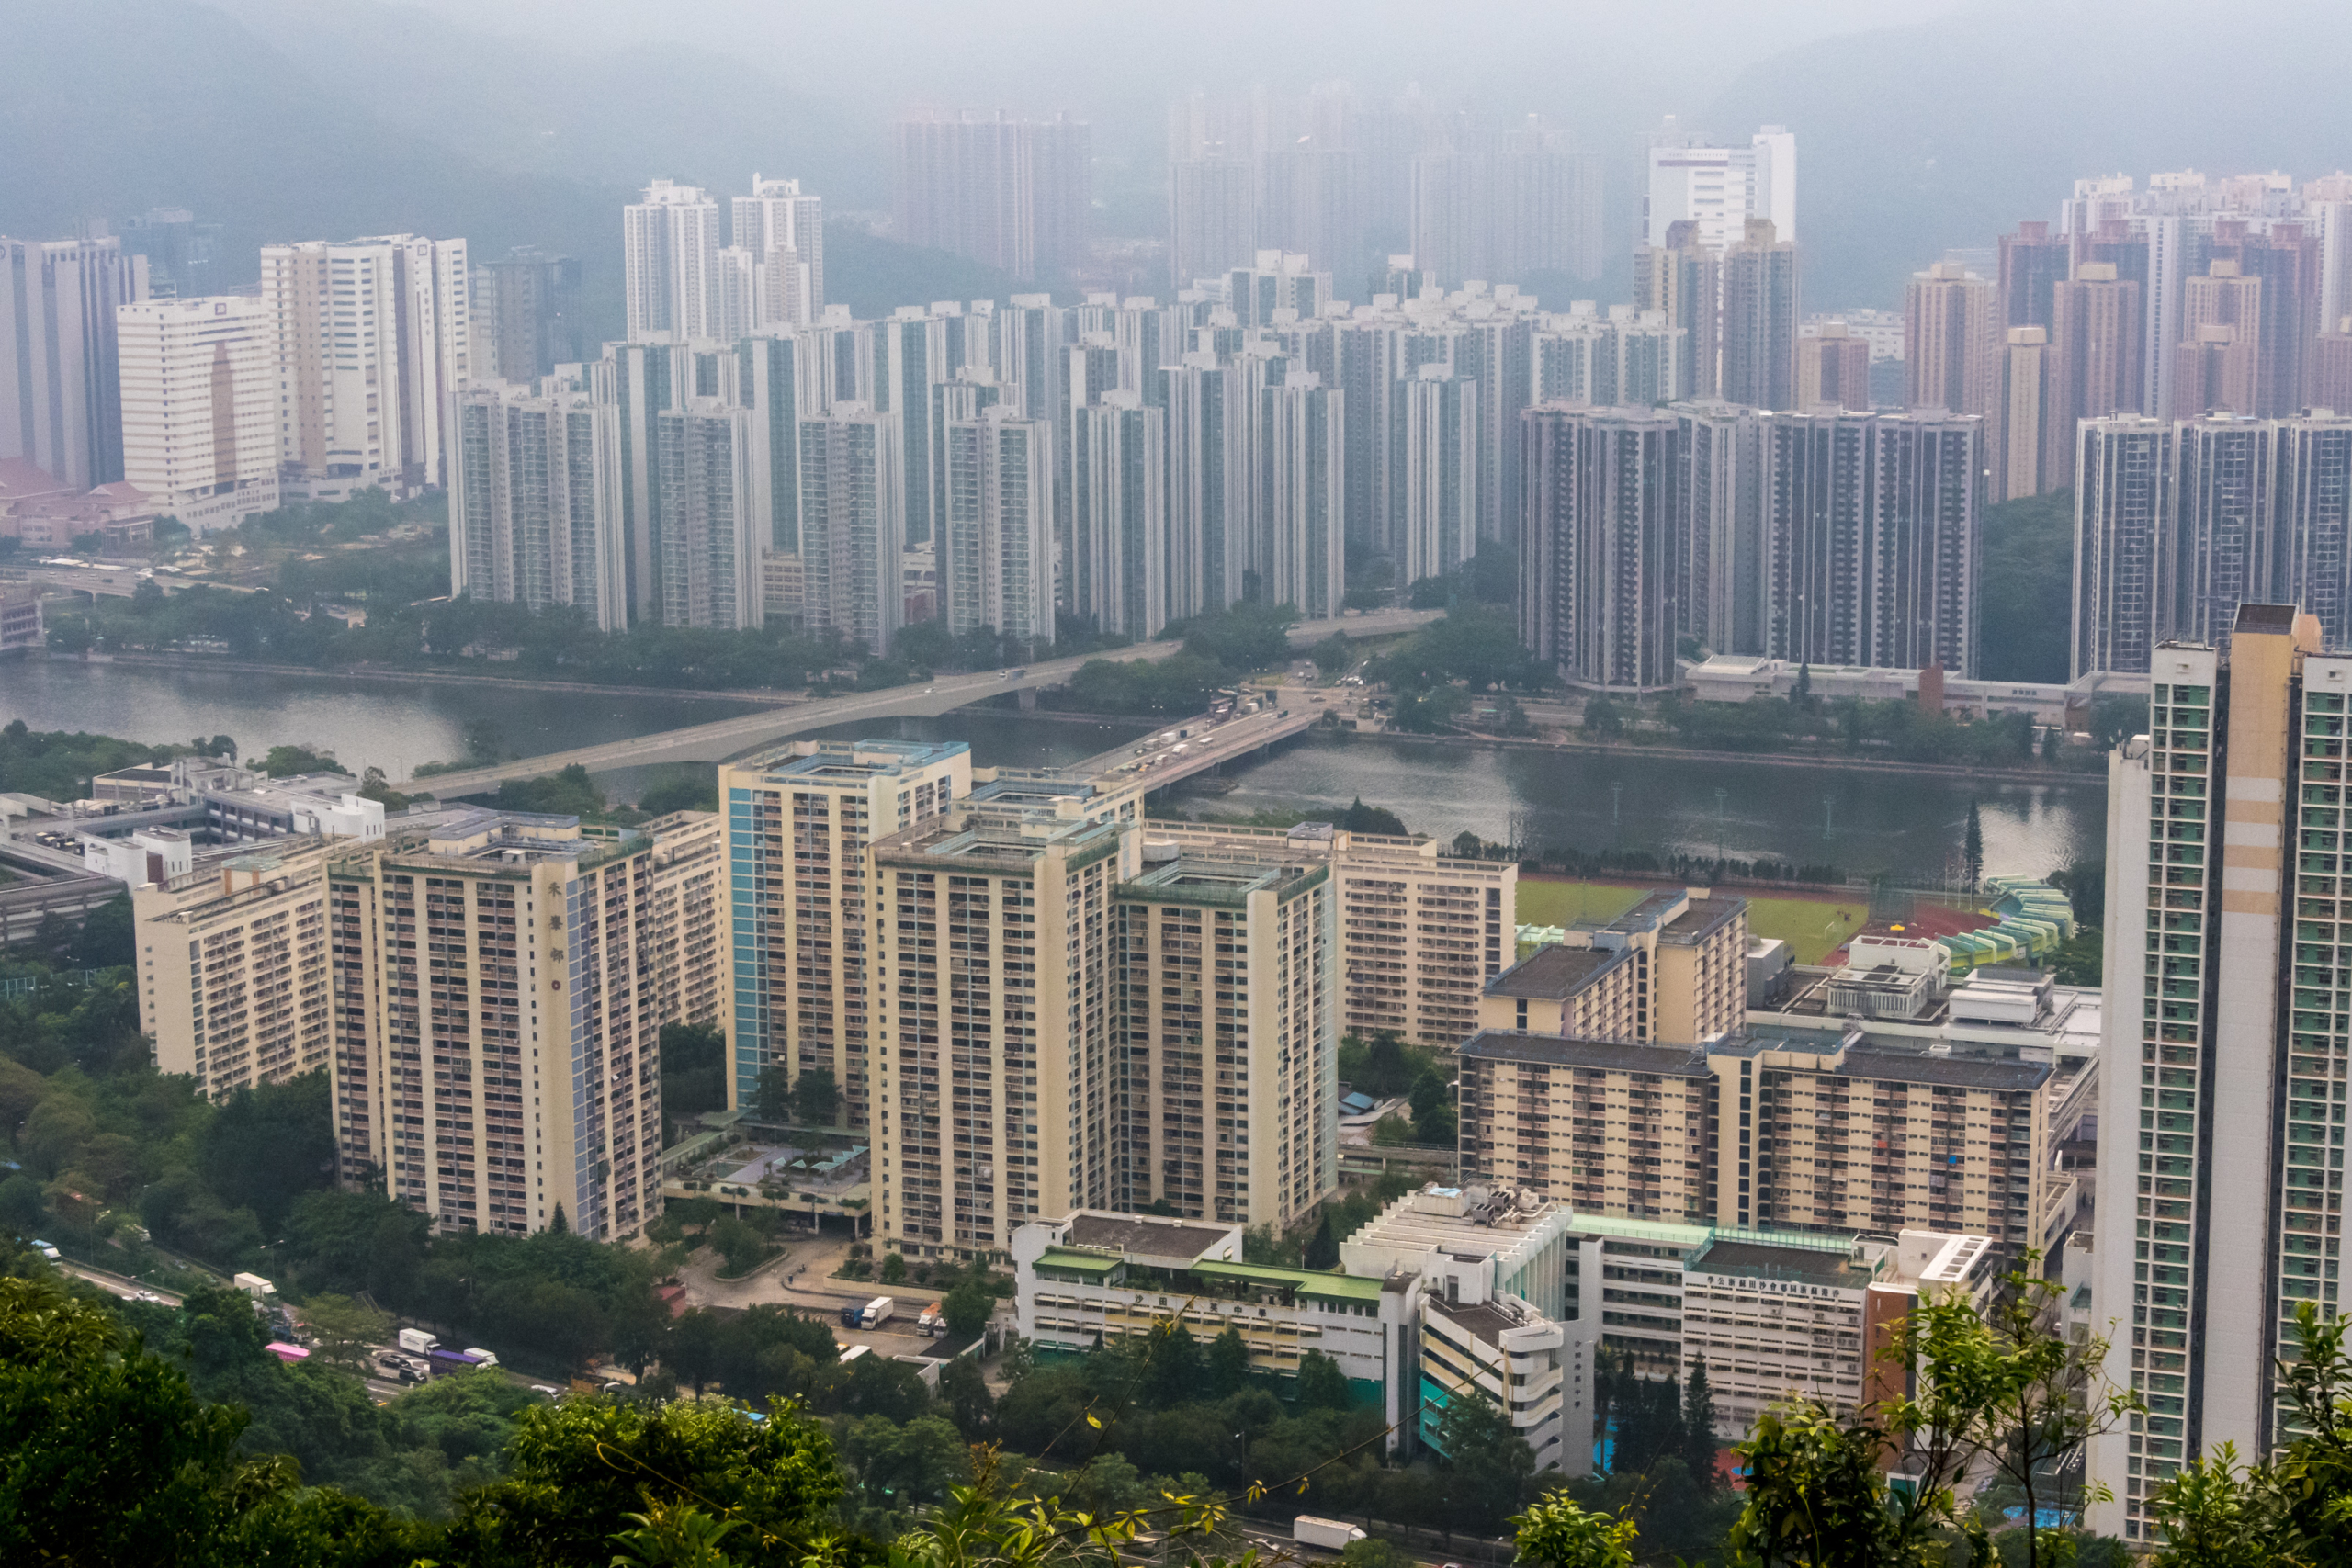 Hong Kong's Housing Crisis